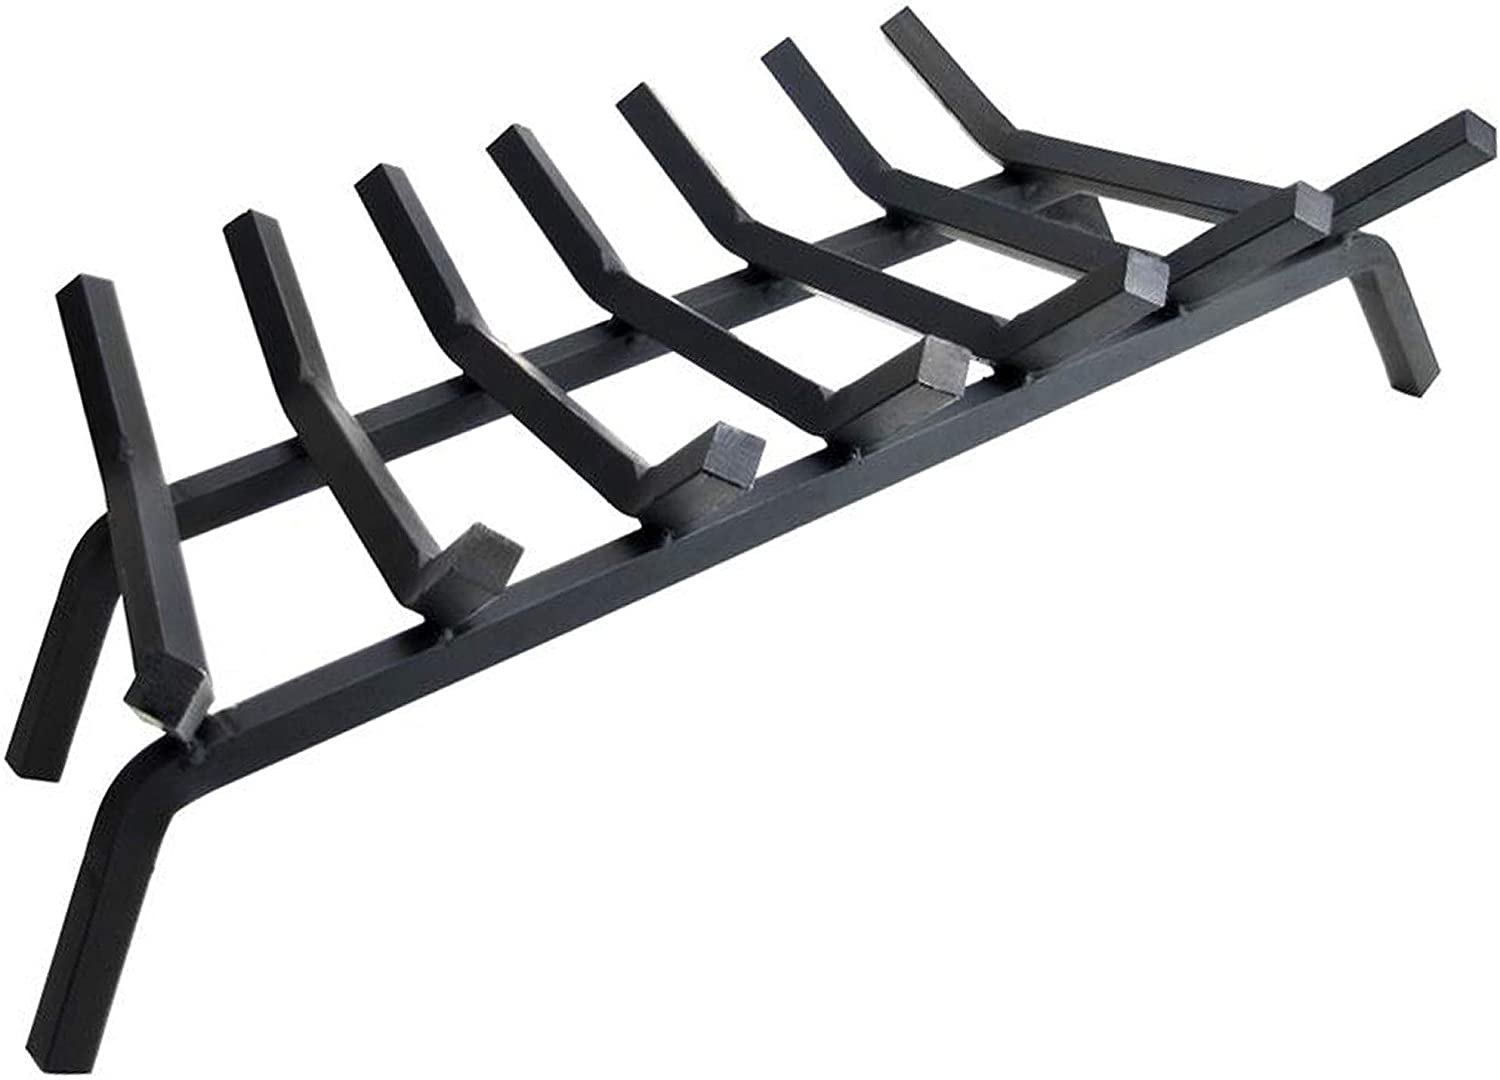 Fireplace Log Grate 30 inch Outstanding - 7 Grates Duty Time sale Fire Bar 4 3 Heavy